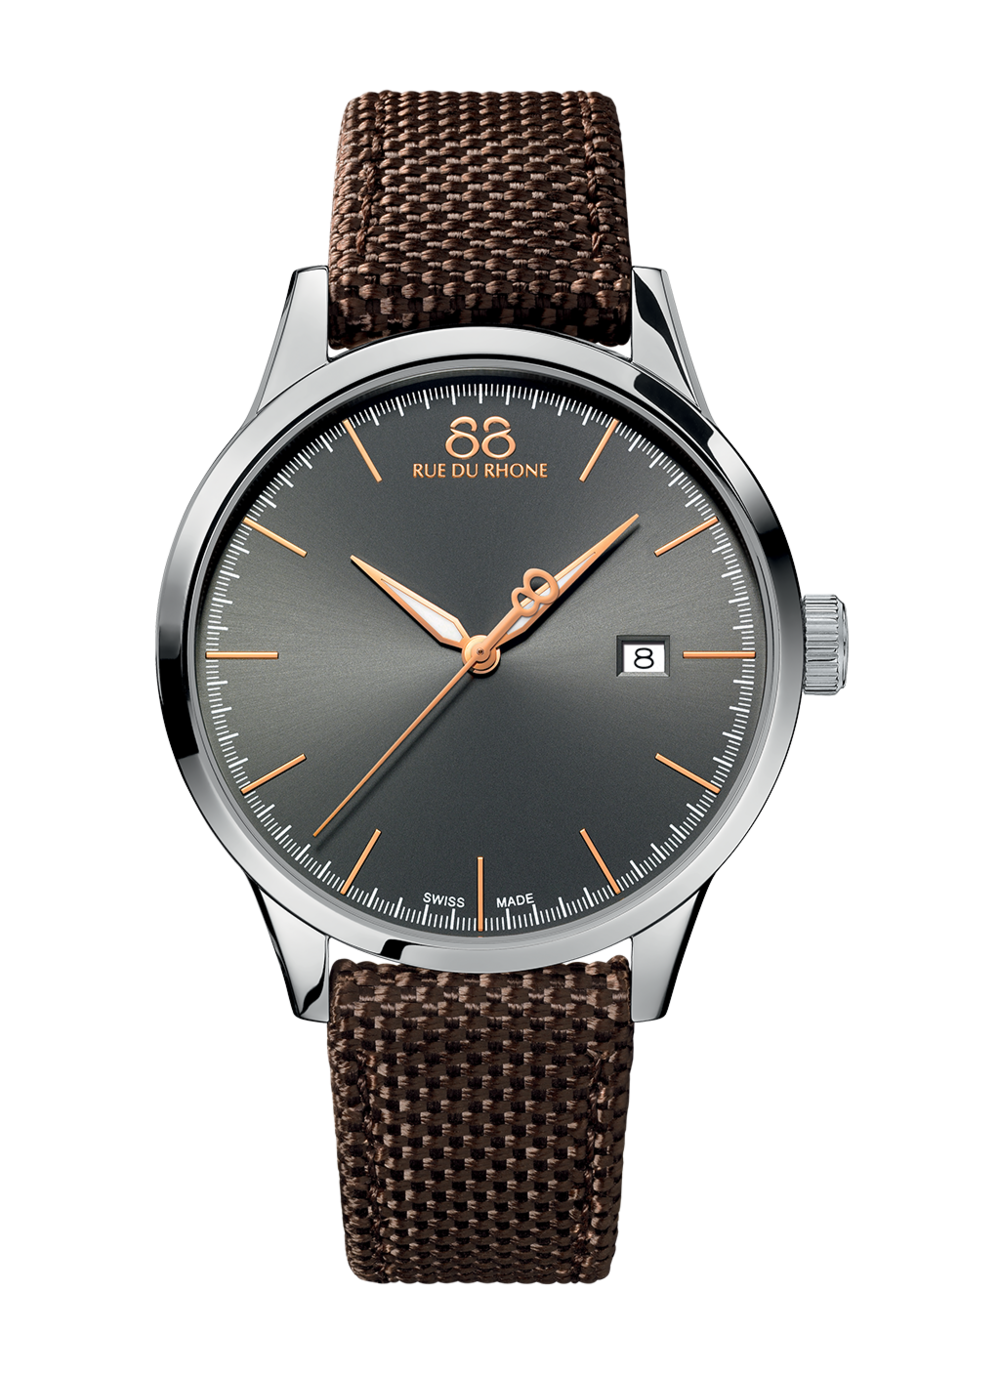 Rive - 41 MM Quartz The elegance of the rose gold on the grey dial mixes with the more casual personality of the Nato strap to create a unique timepiece! Perfect with a suit or a more relaxed outfit, this watch is a true match for all styles!